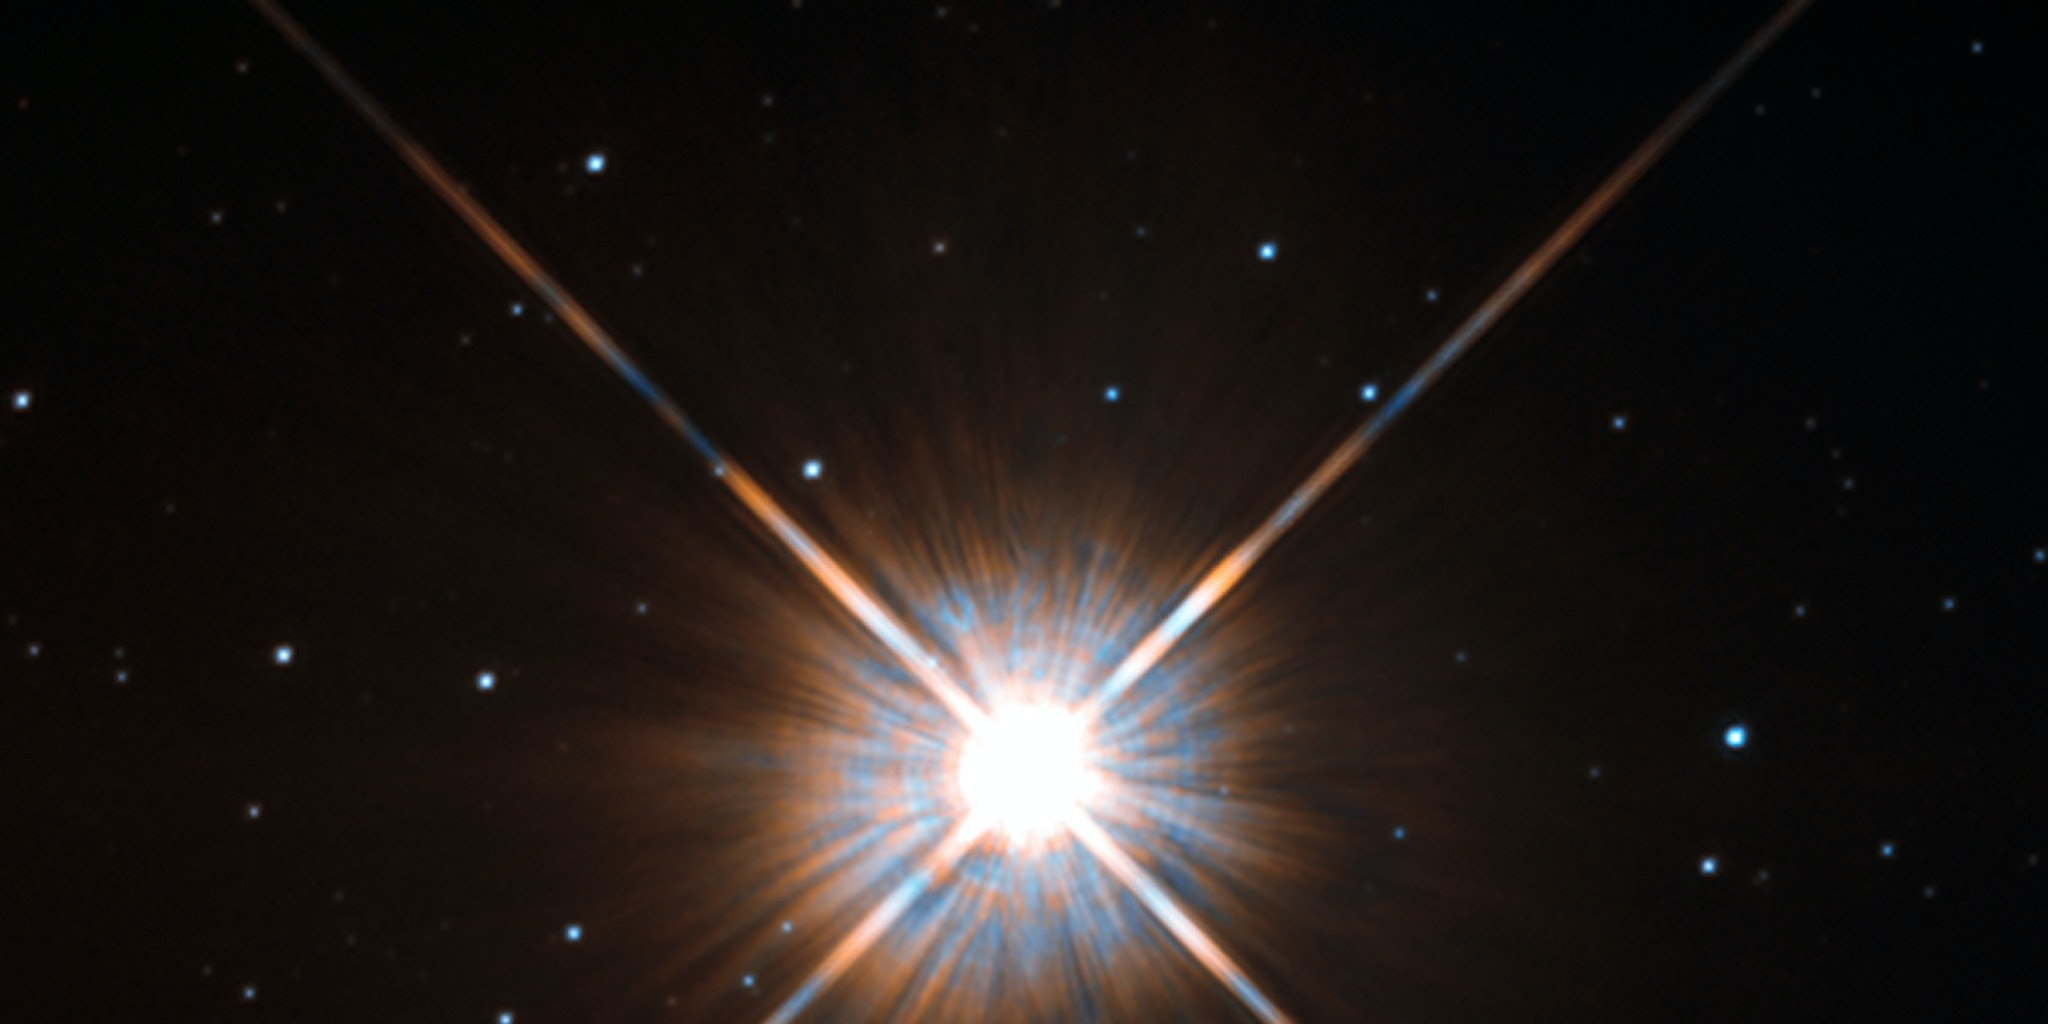 Proxima Centauri, the star closest to our own, which supports a newly discovered Earth-like planet.